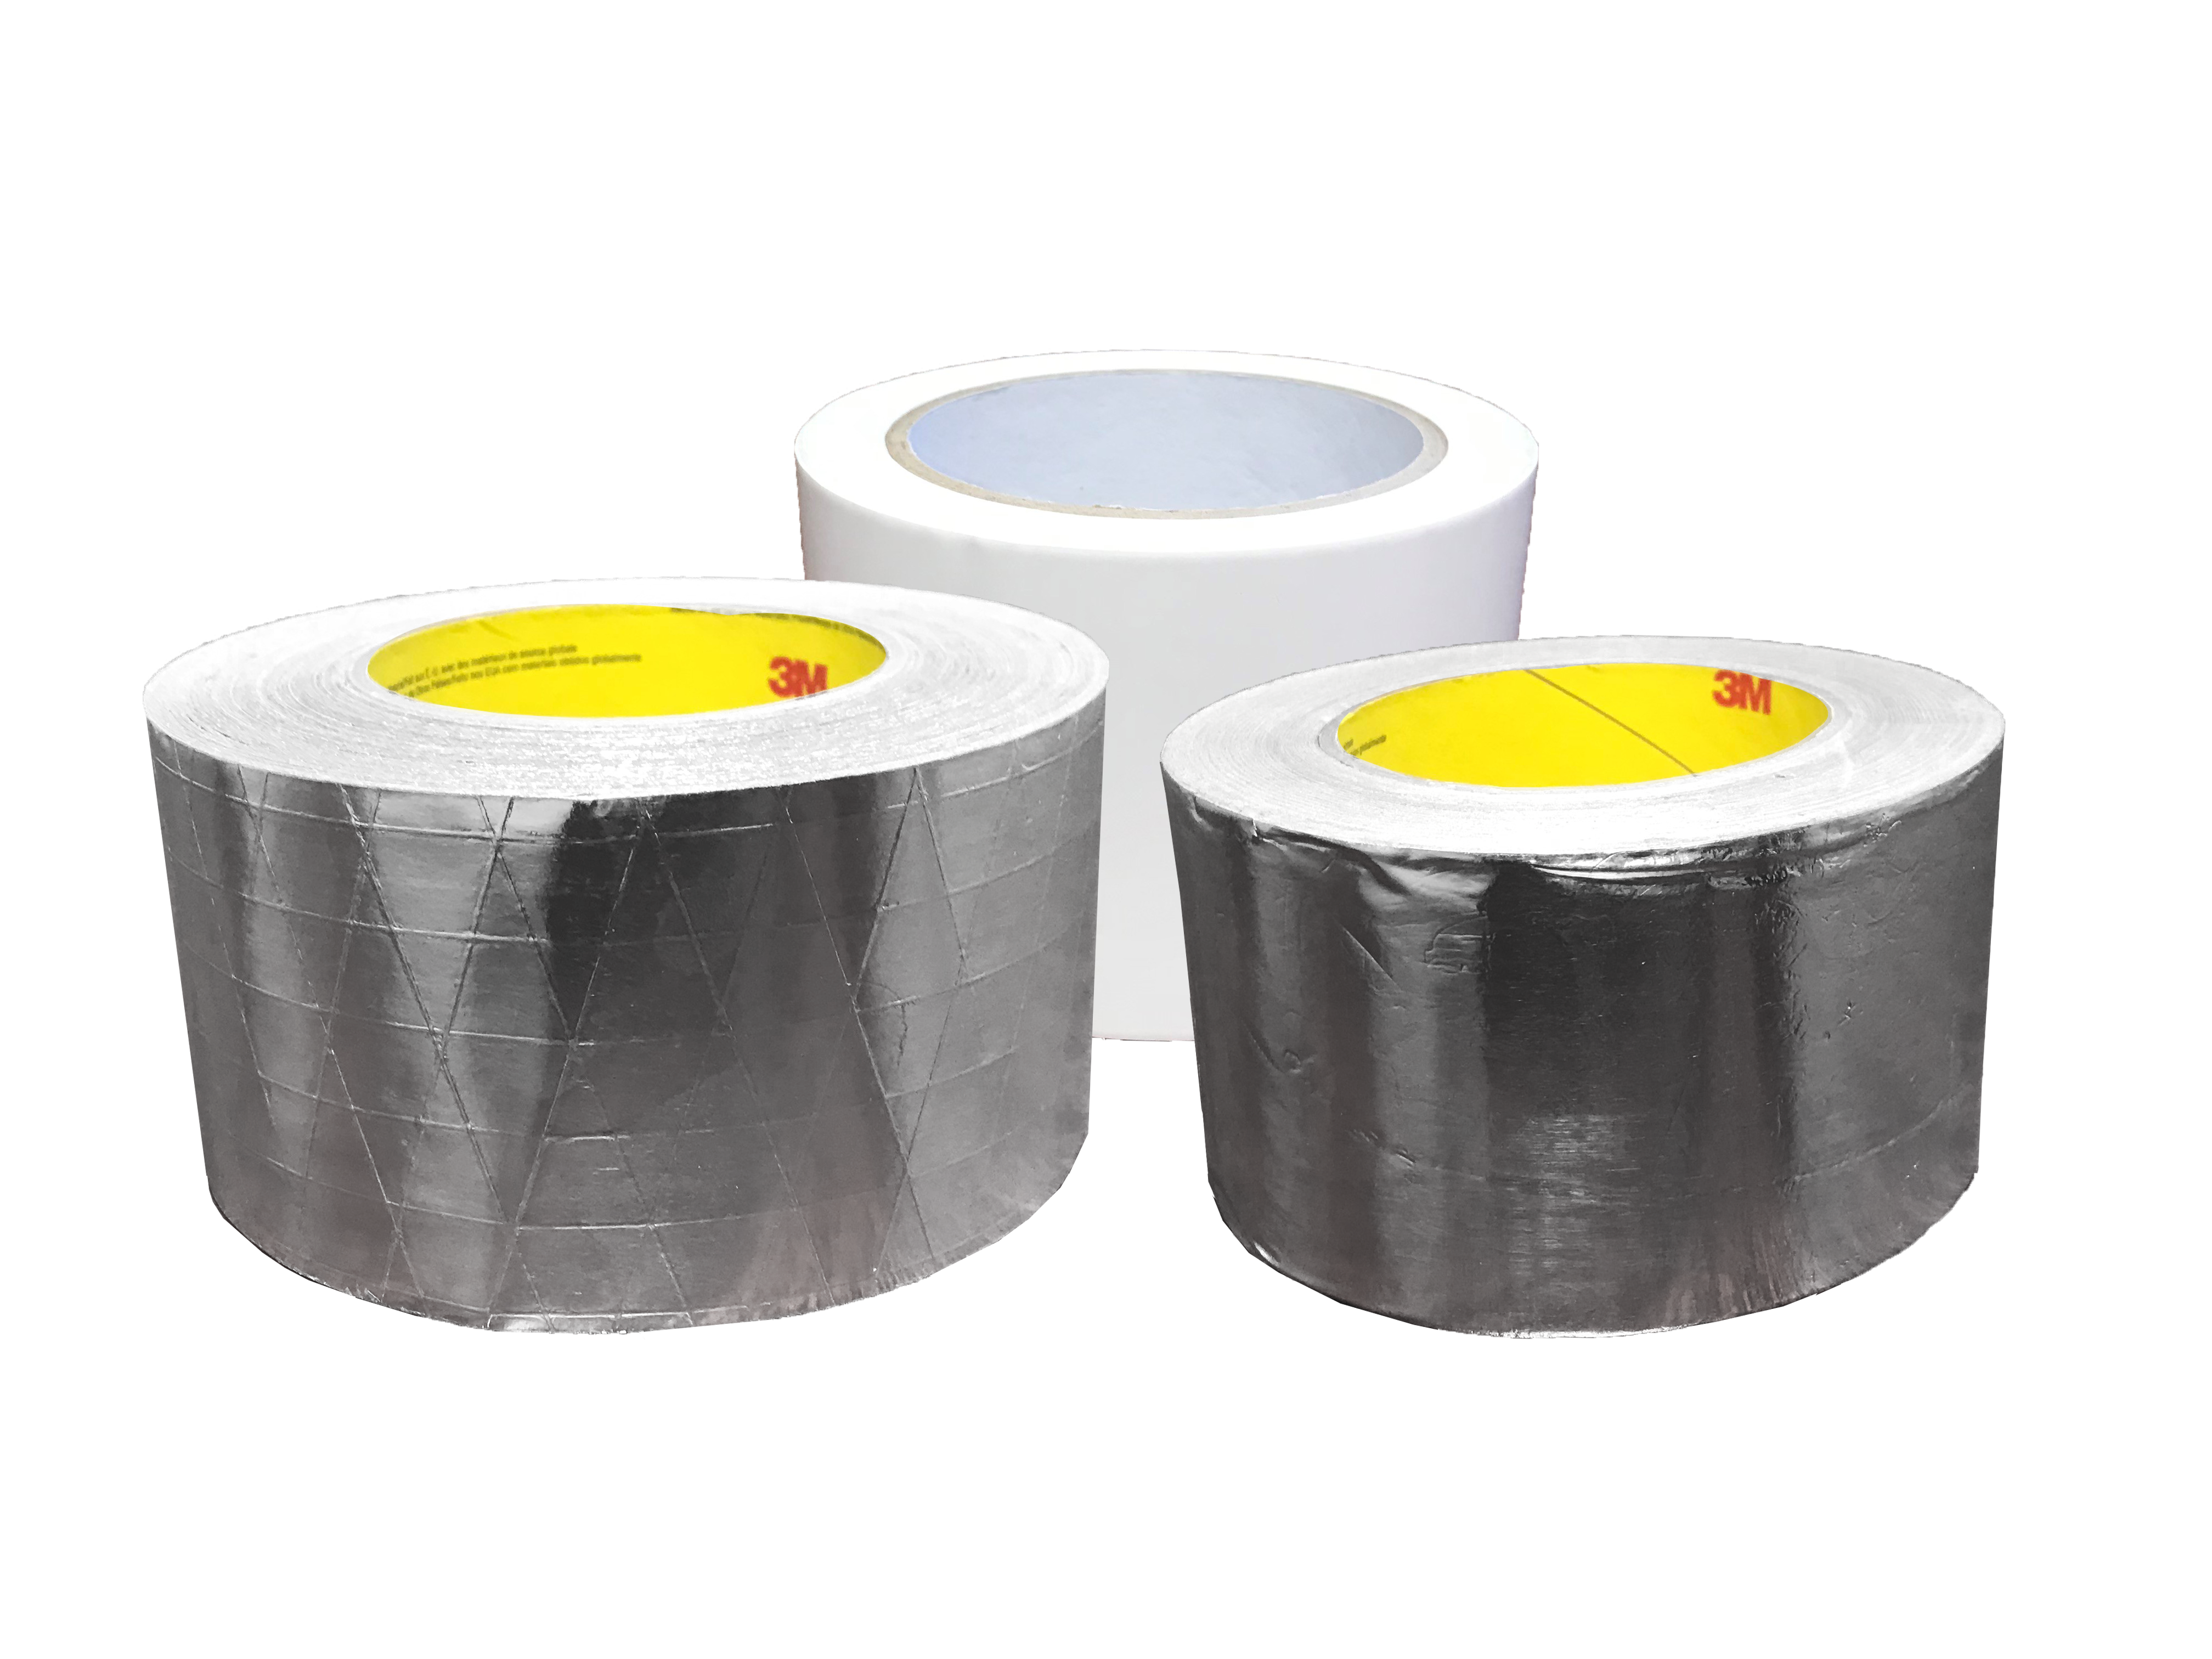 Product Shot of Tapes